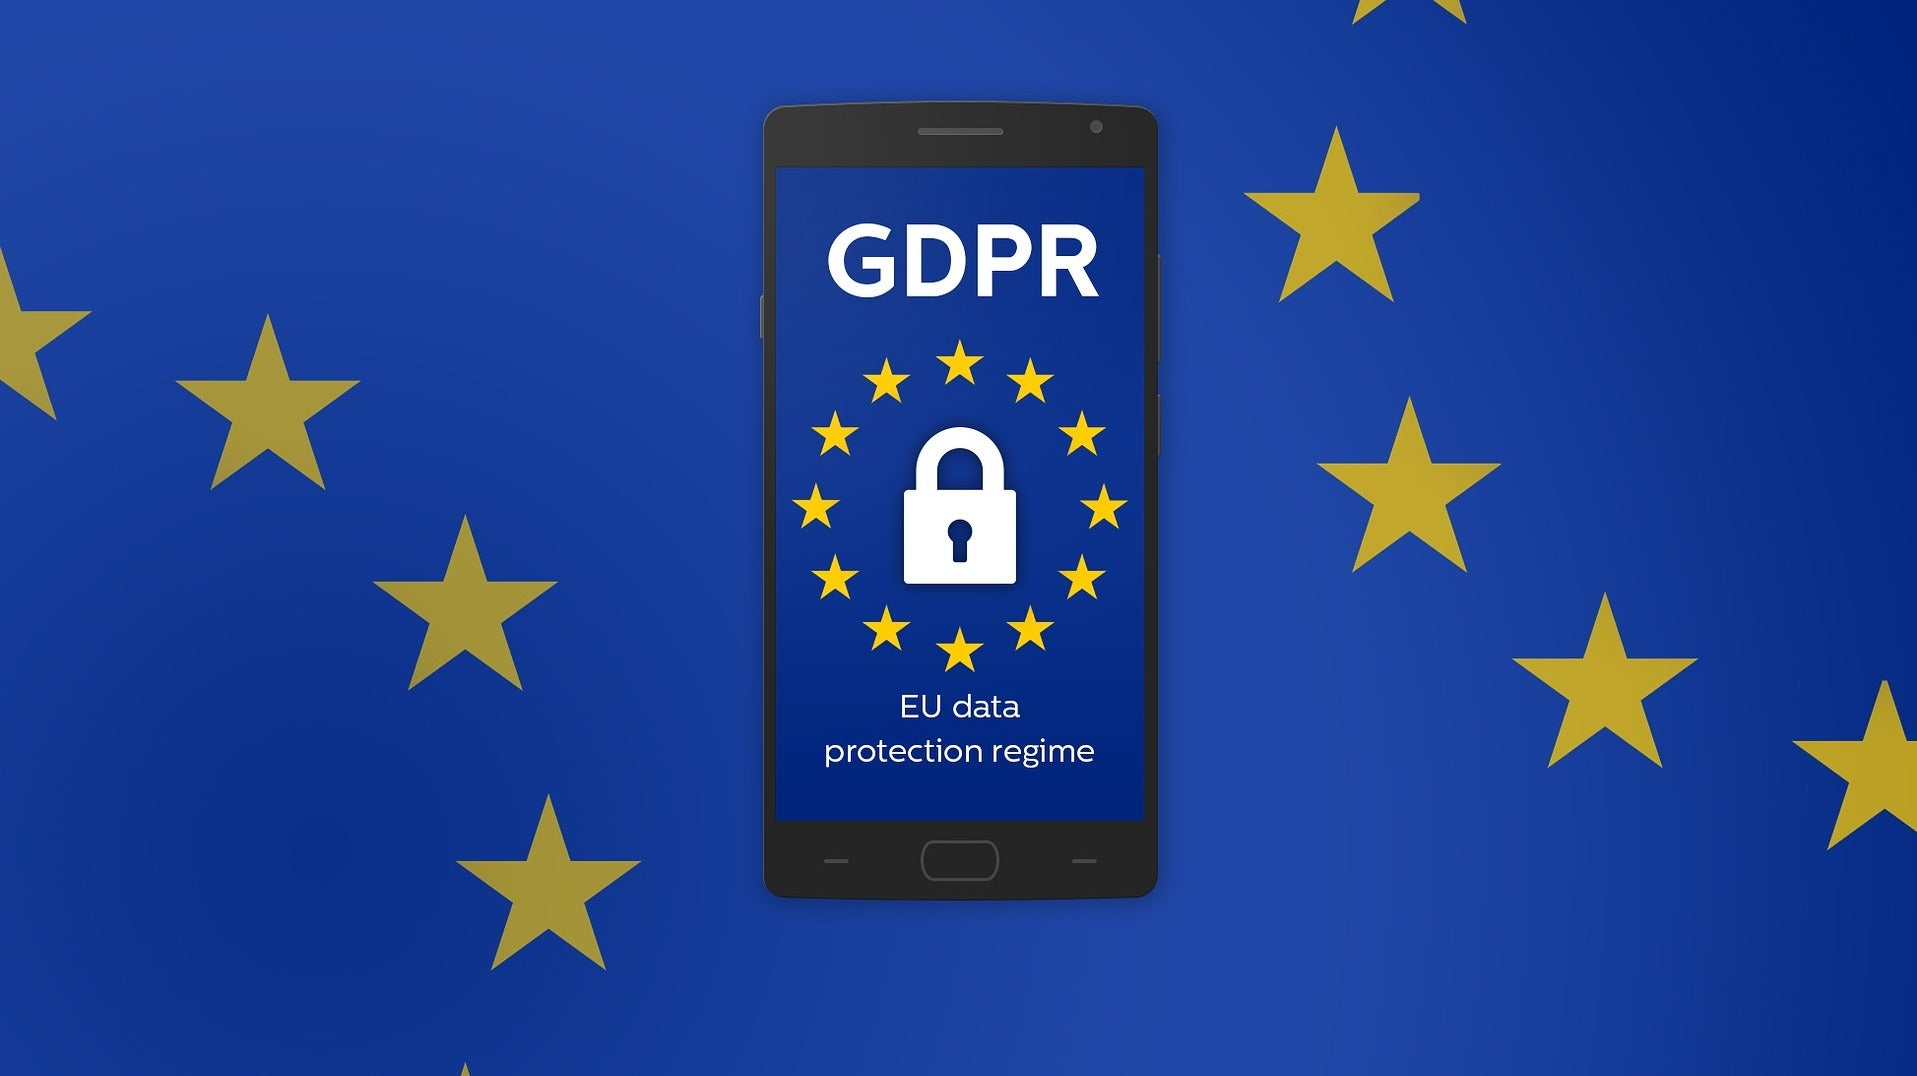 cybersecurity europe gdpr internet legal